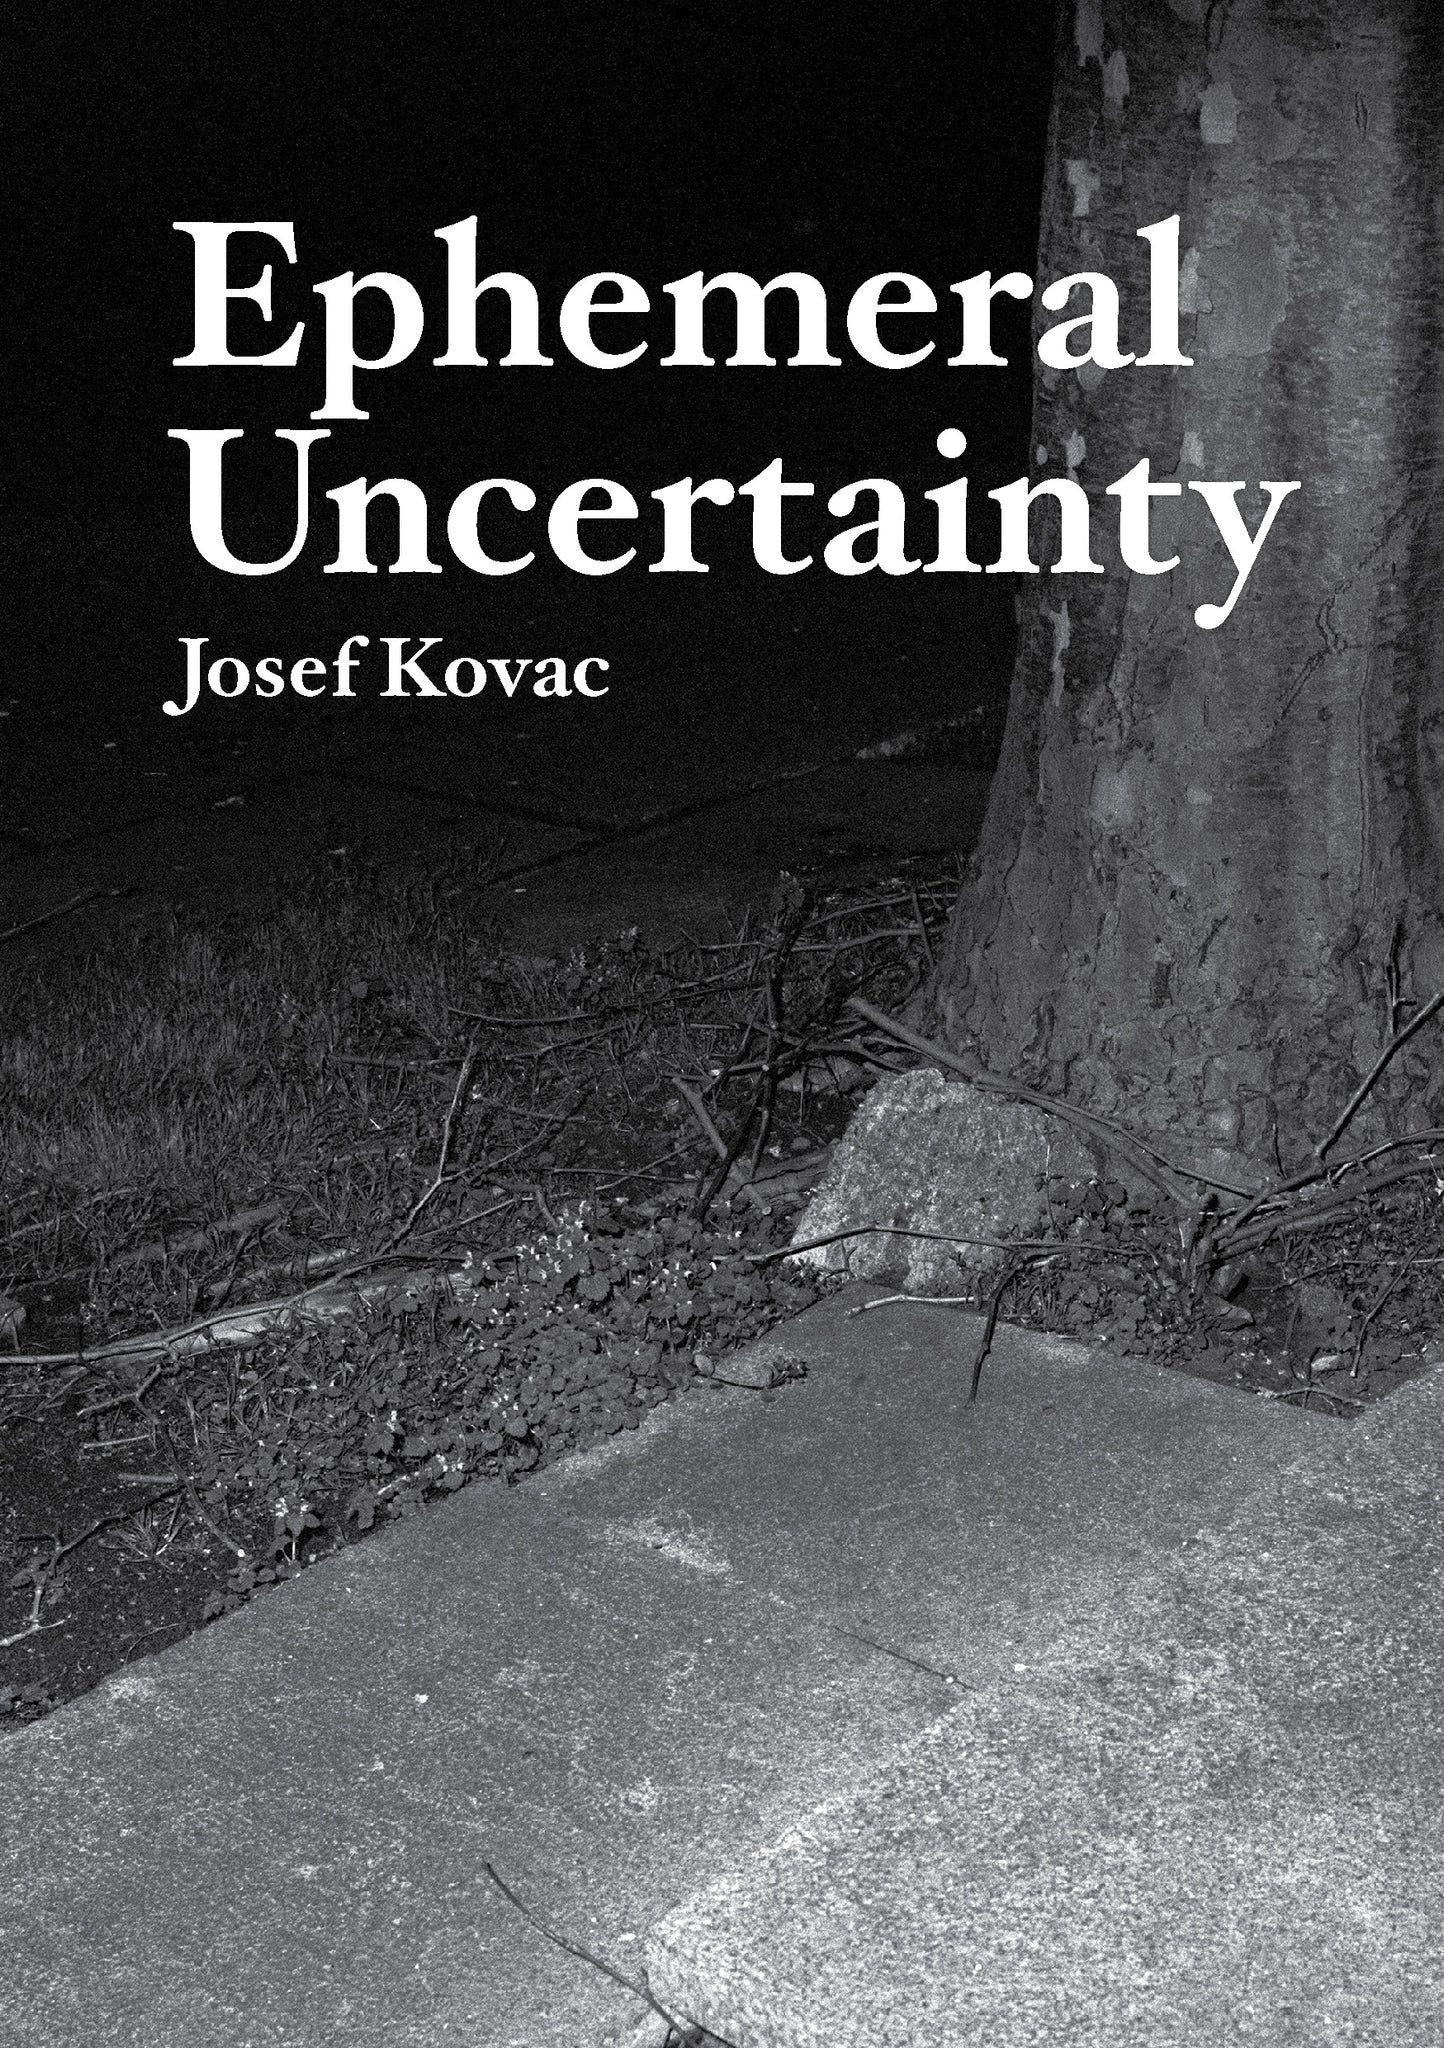 Ephemeral Uncertainty, Josef Kovac - The Library Project